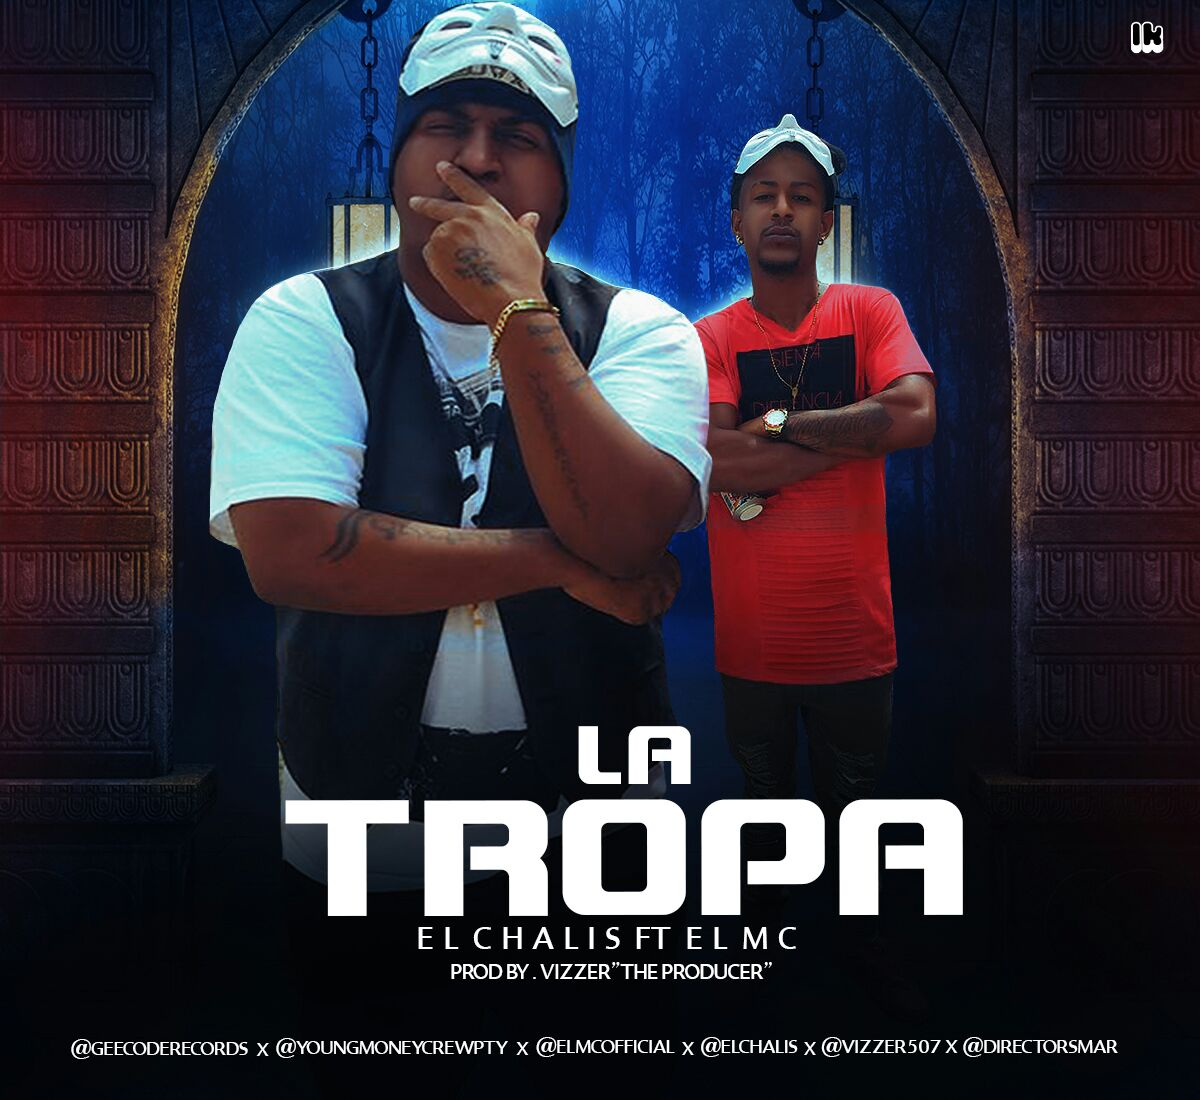 El Chalis Ft El MC - La Tropa